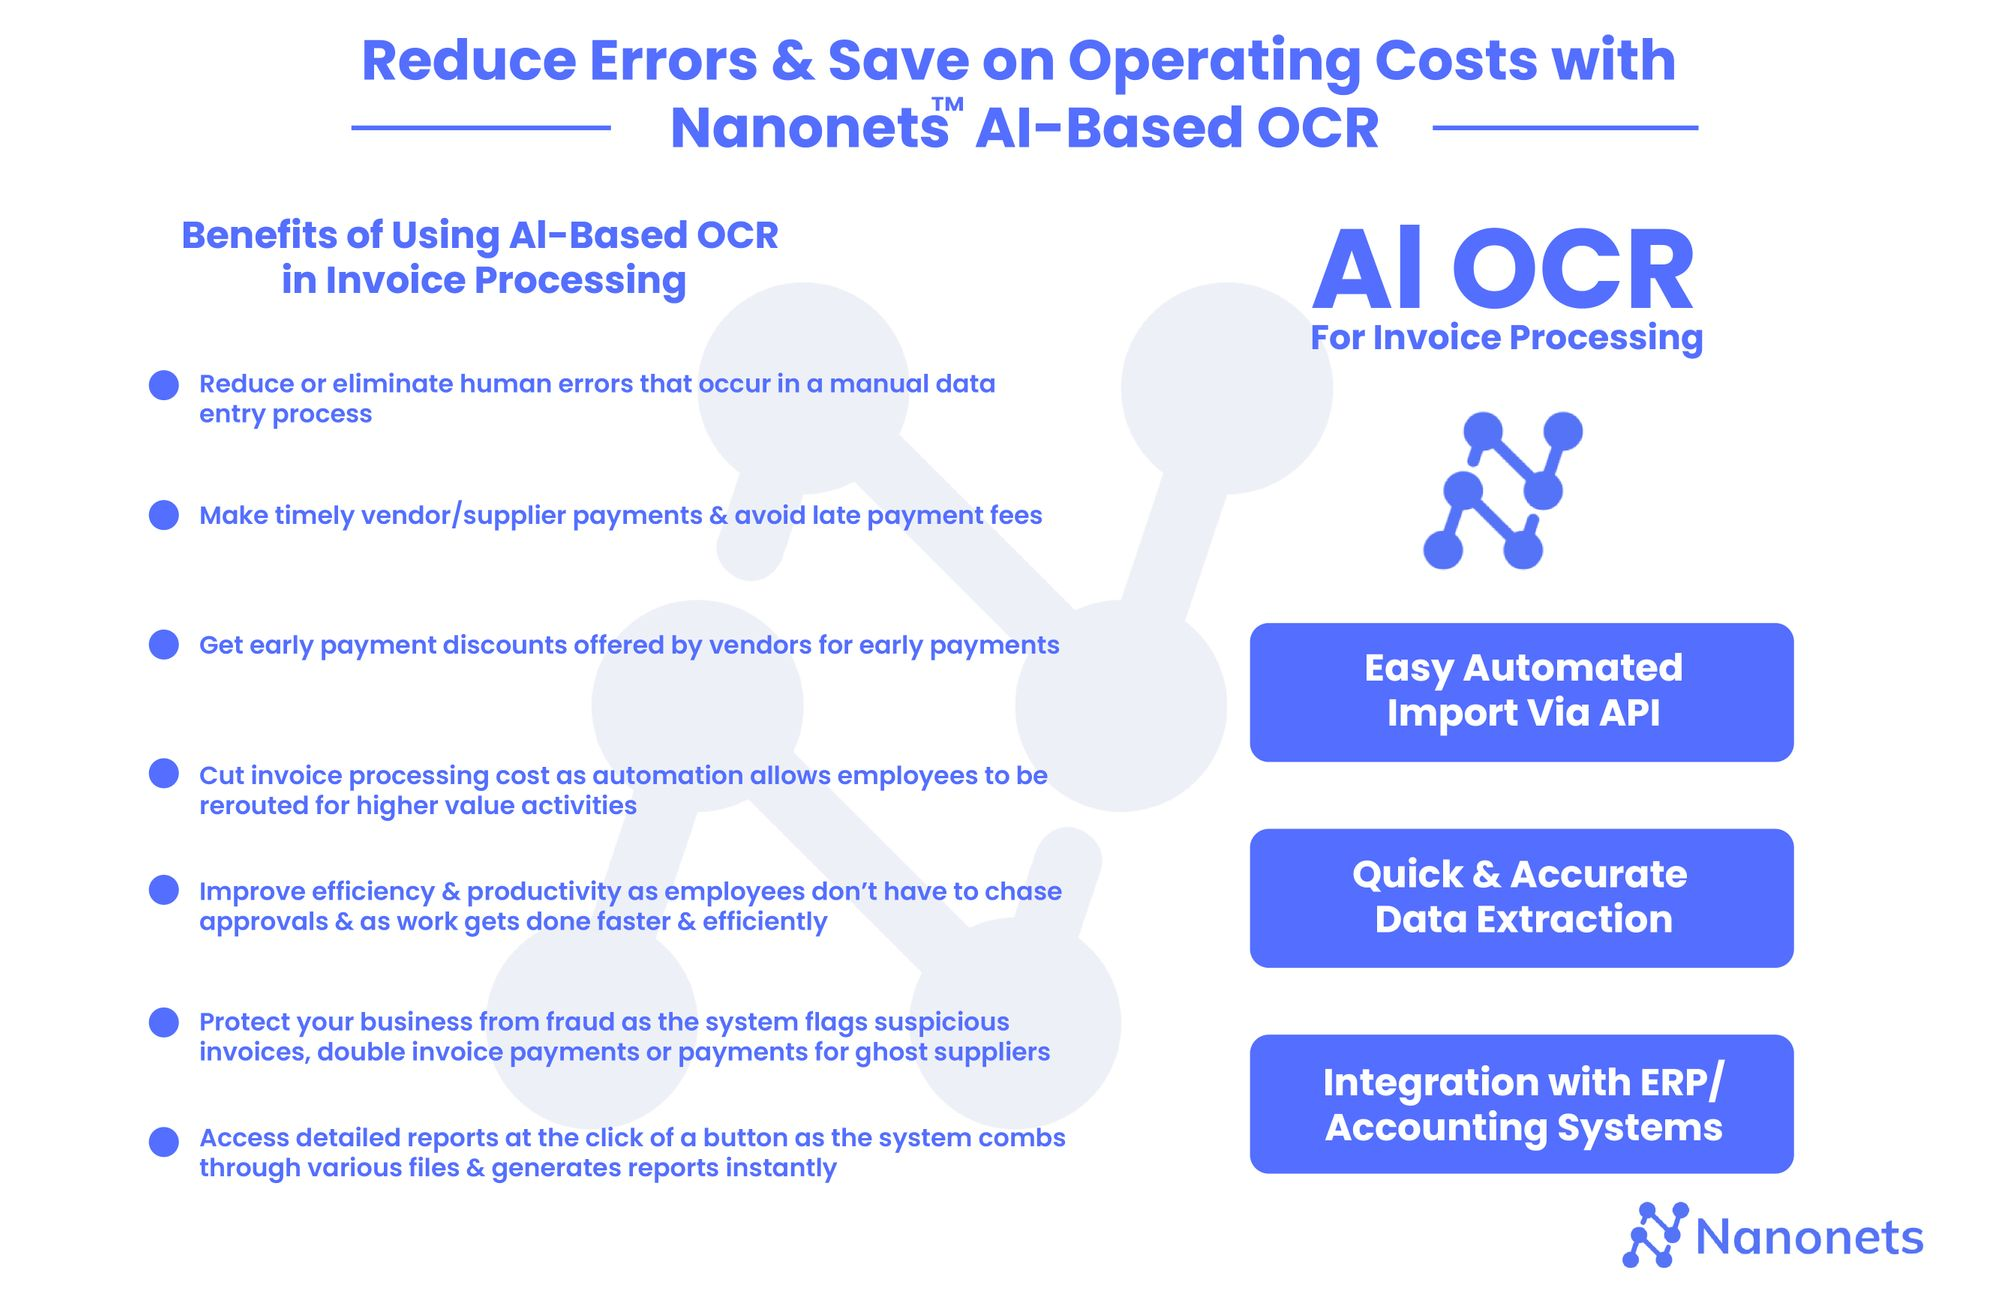 Why Automate Invoice Processing?